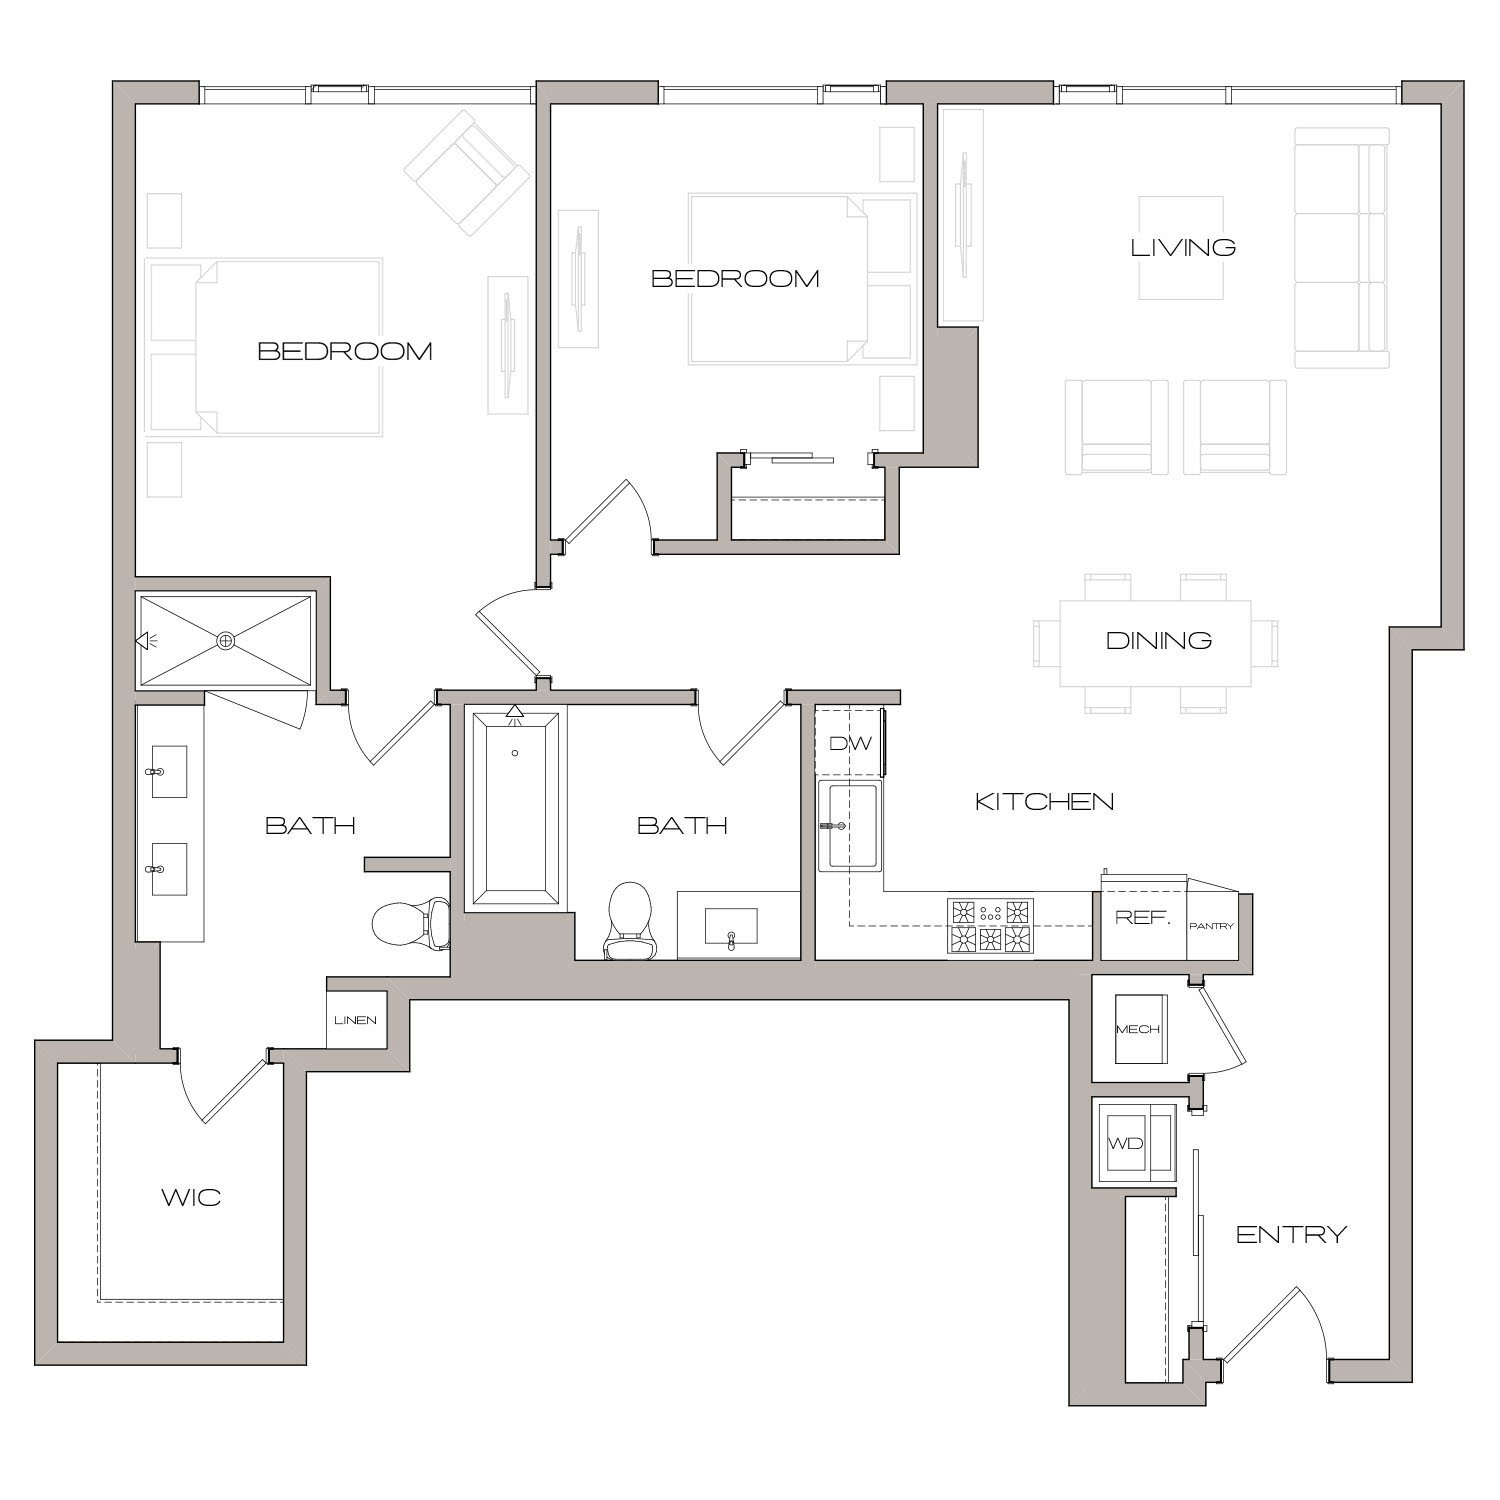 B 7 floor plan diagram. Two bedrooms, two bathrooms, an open kitchen and living area, and a washer dryer.